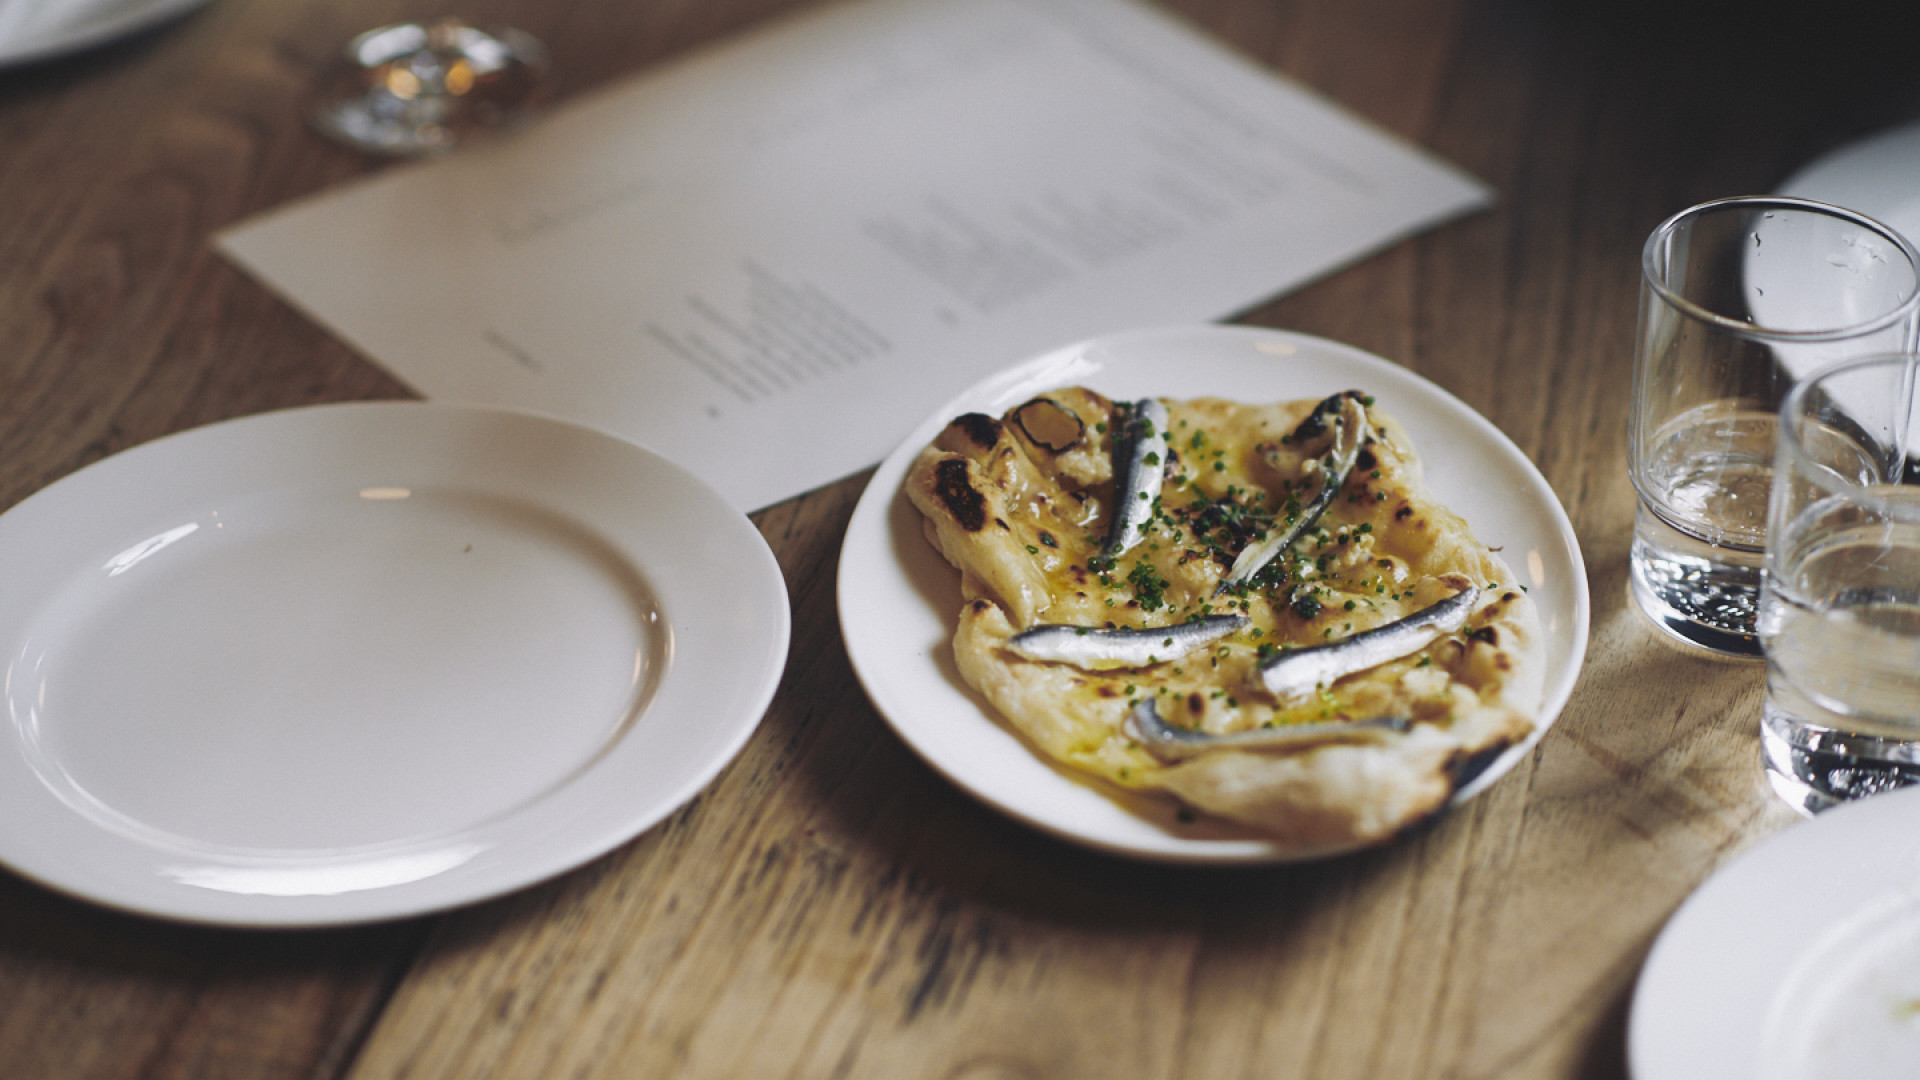 Anchovy flatbread at Brat in Shoreditch